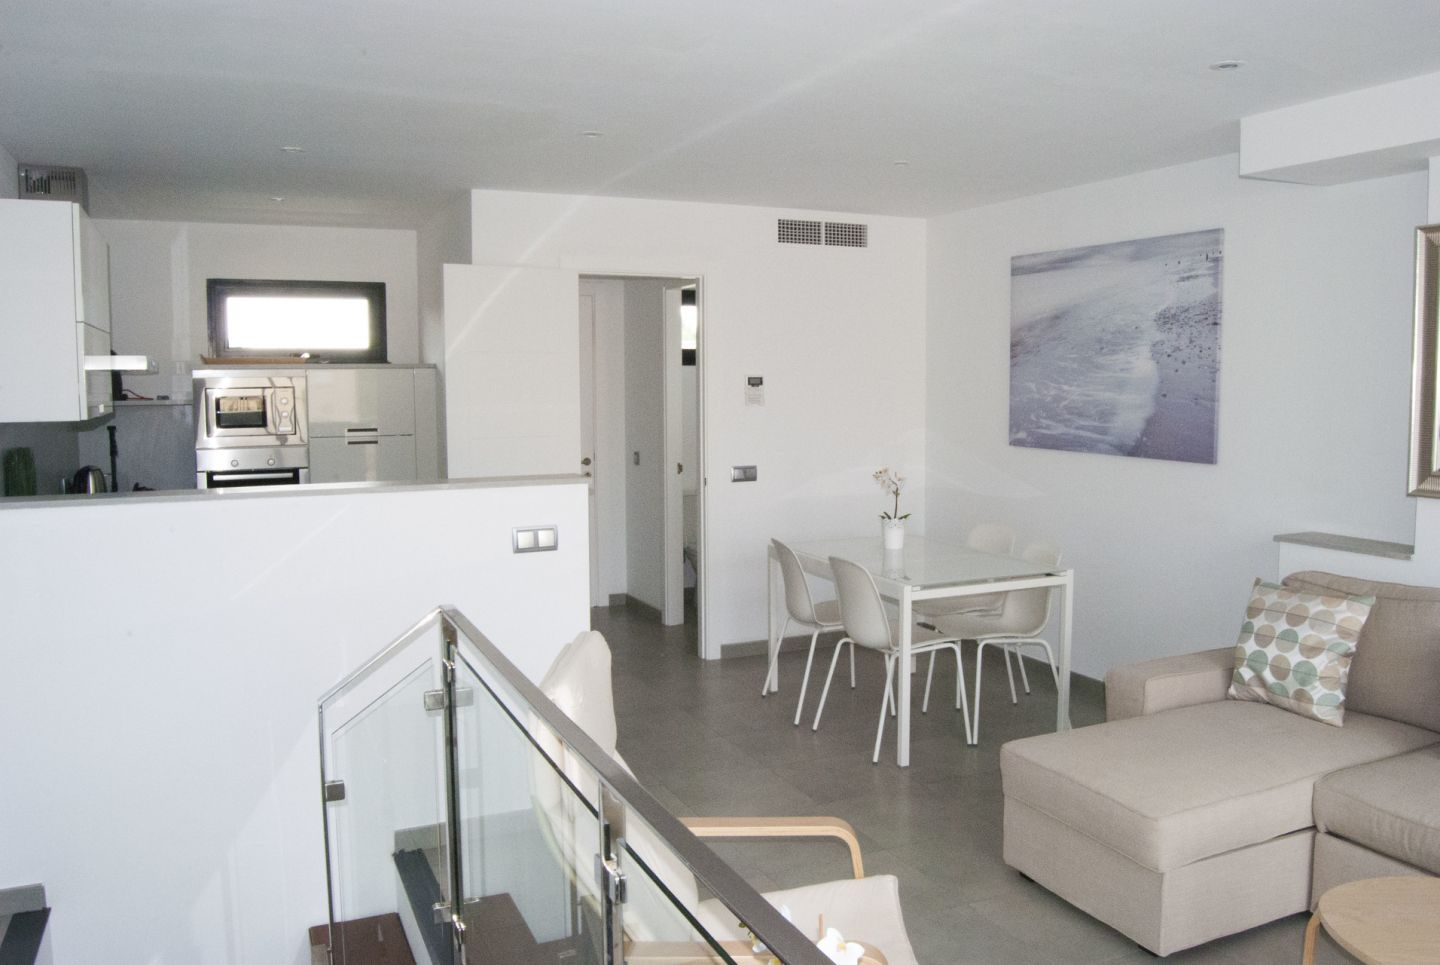 3 Bed Duplex for sale in PUERTO POLLENSA 13